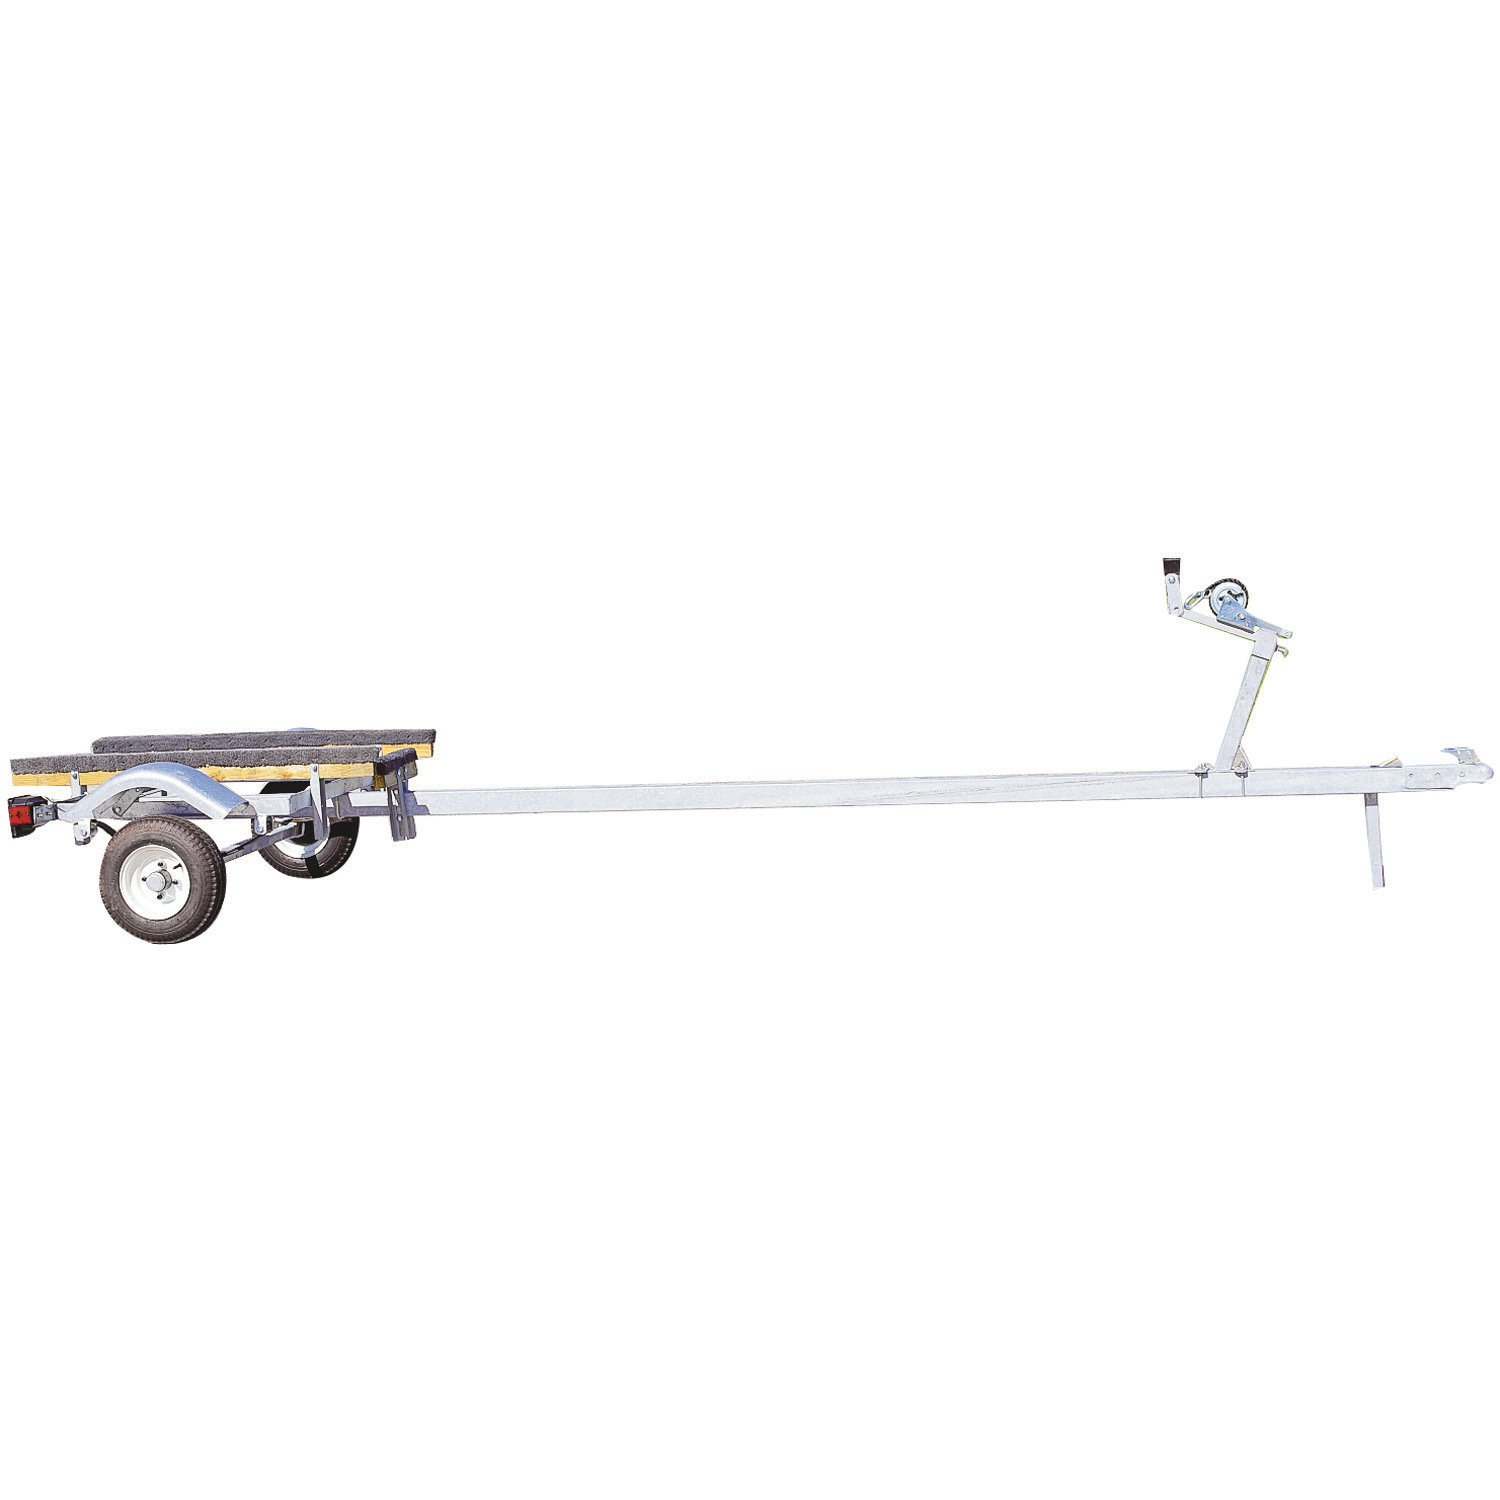 Mcclain 12 14 Single Axle Aluminum Jon Boat Trailer